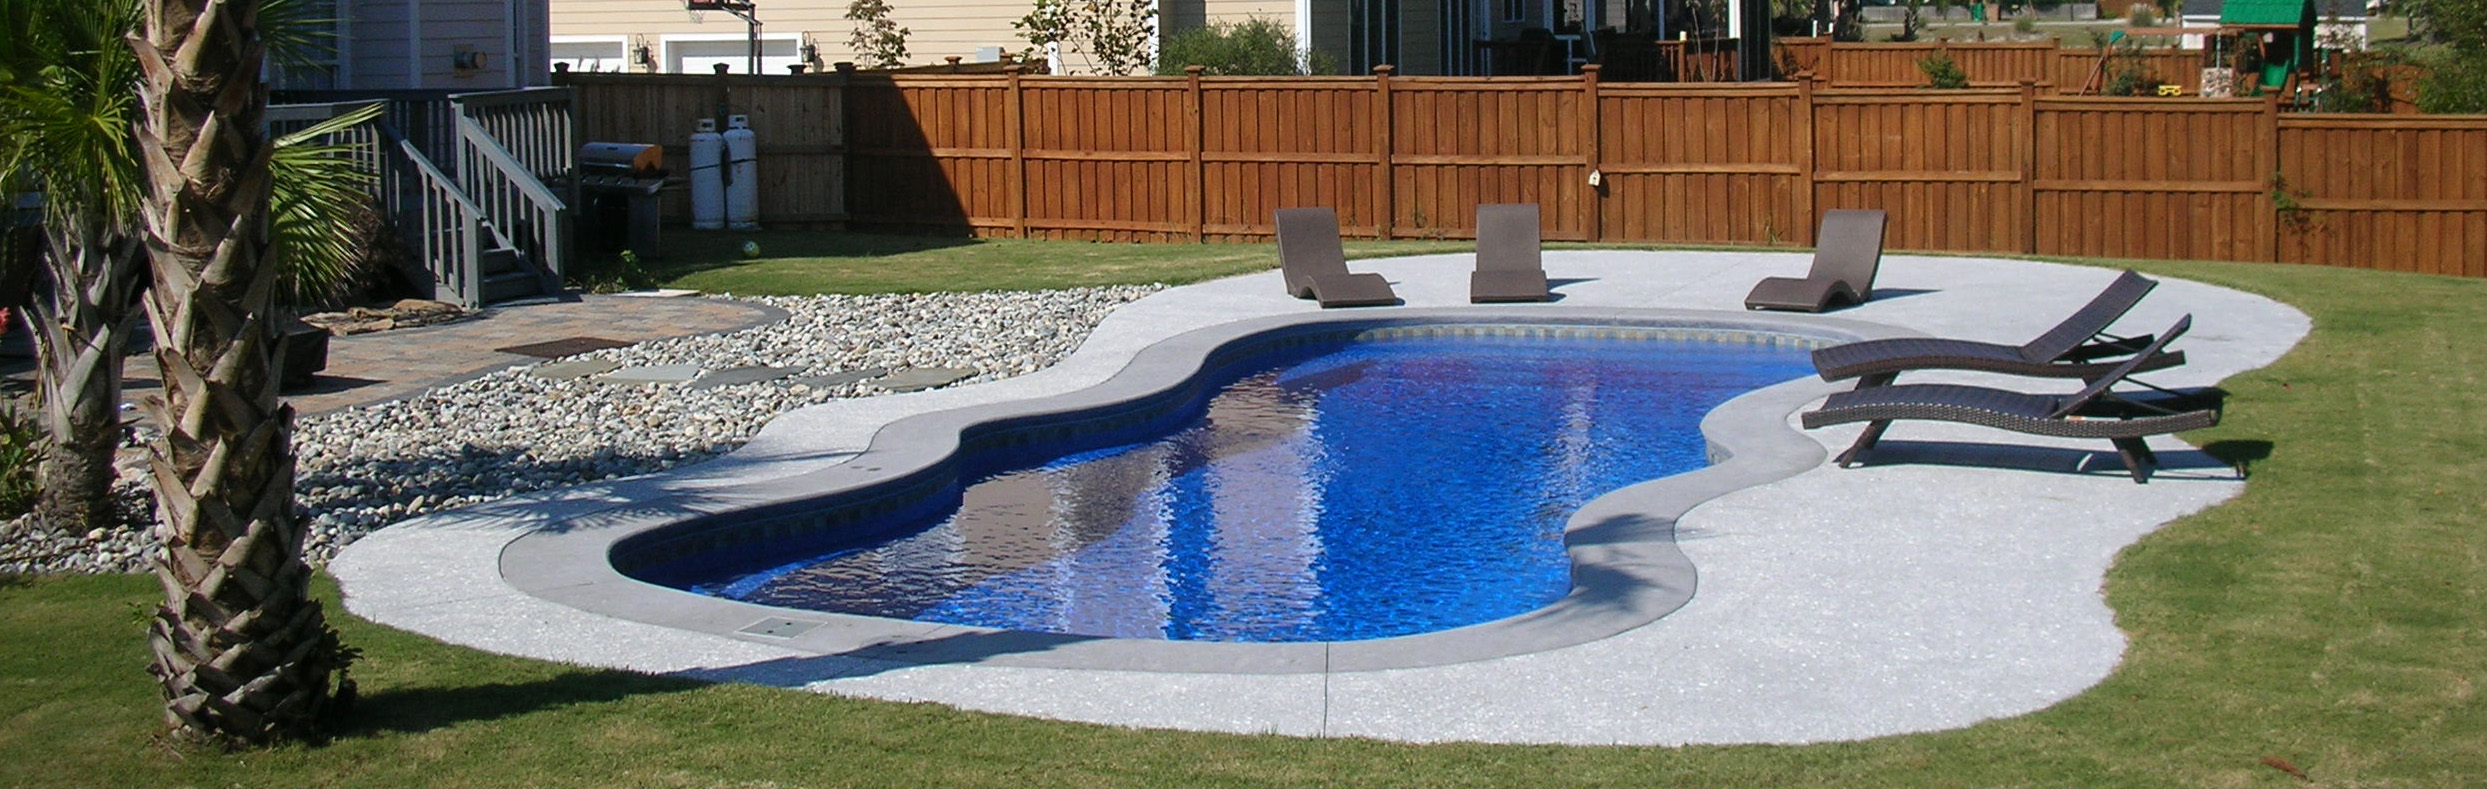 Fiberglass Pools Port City Pools